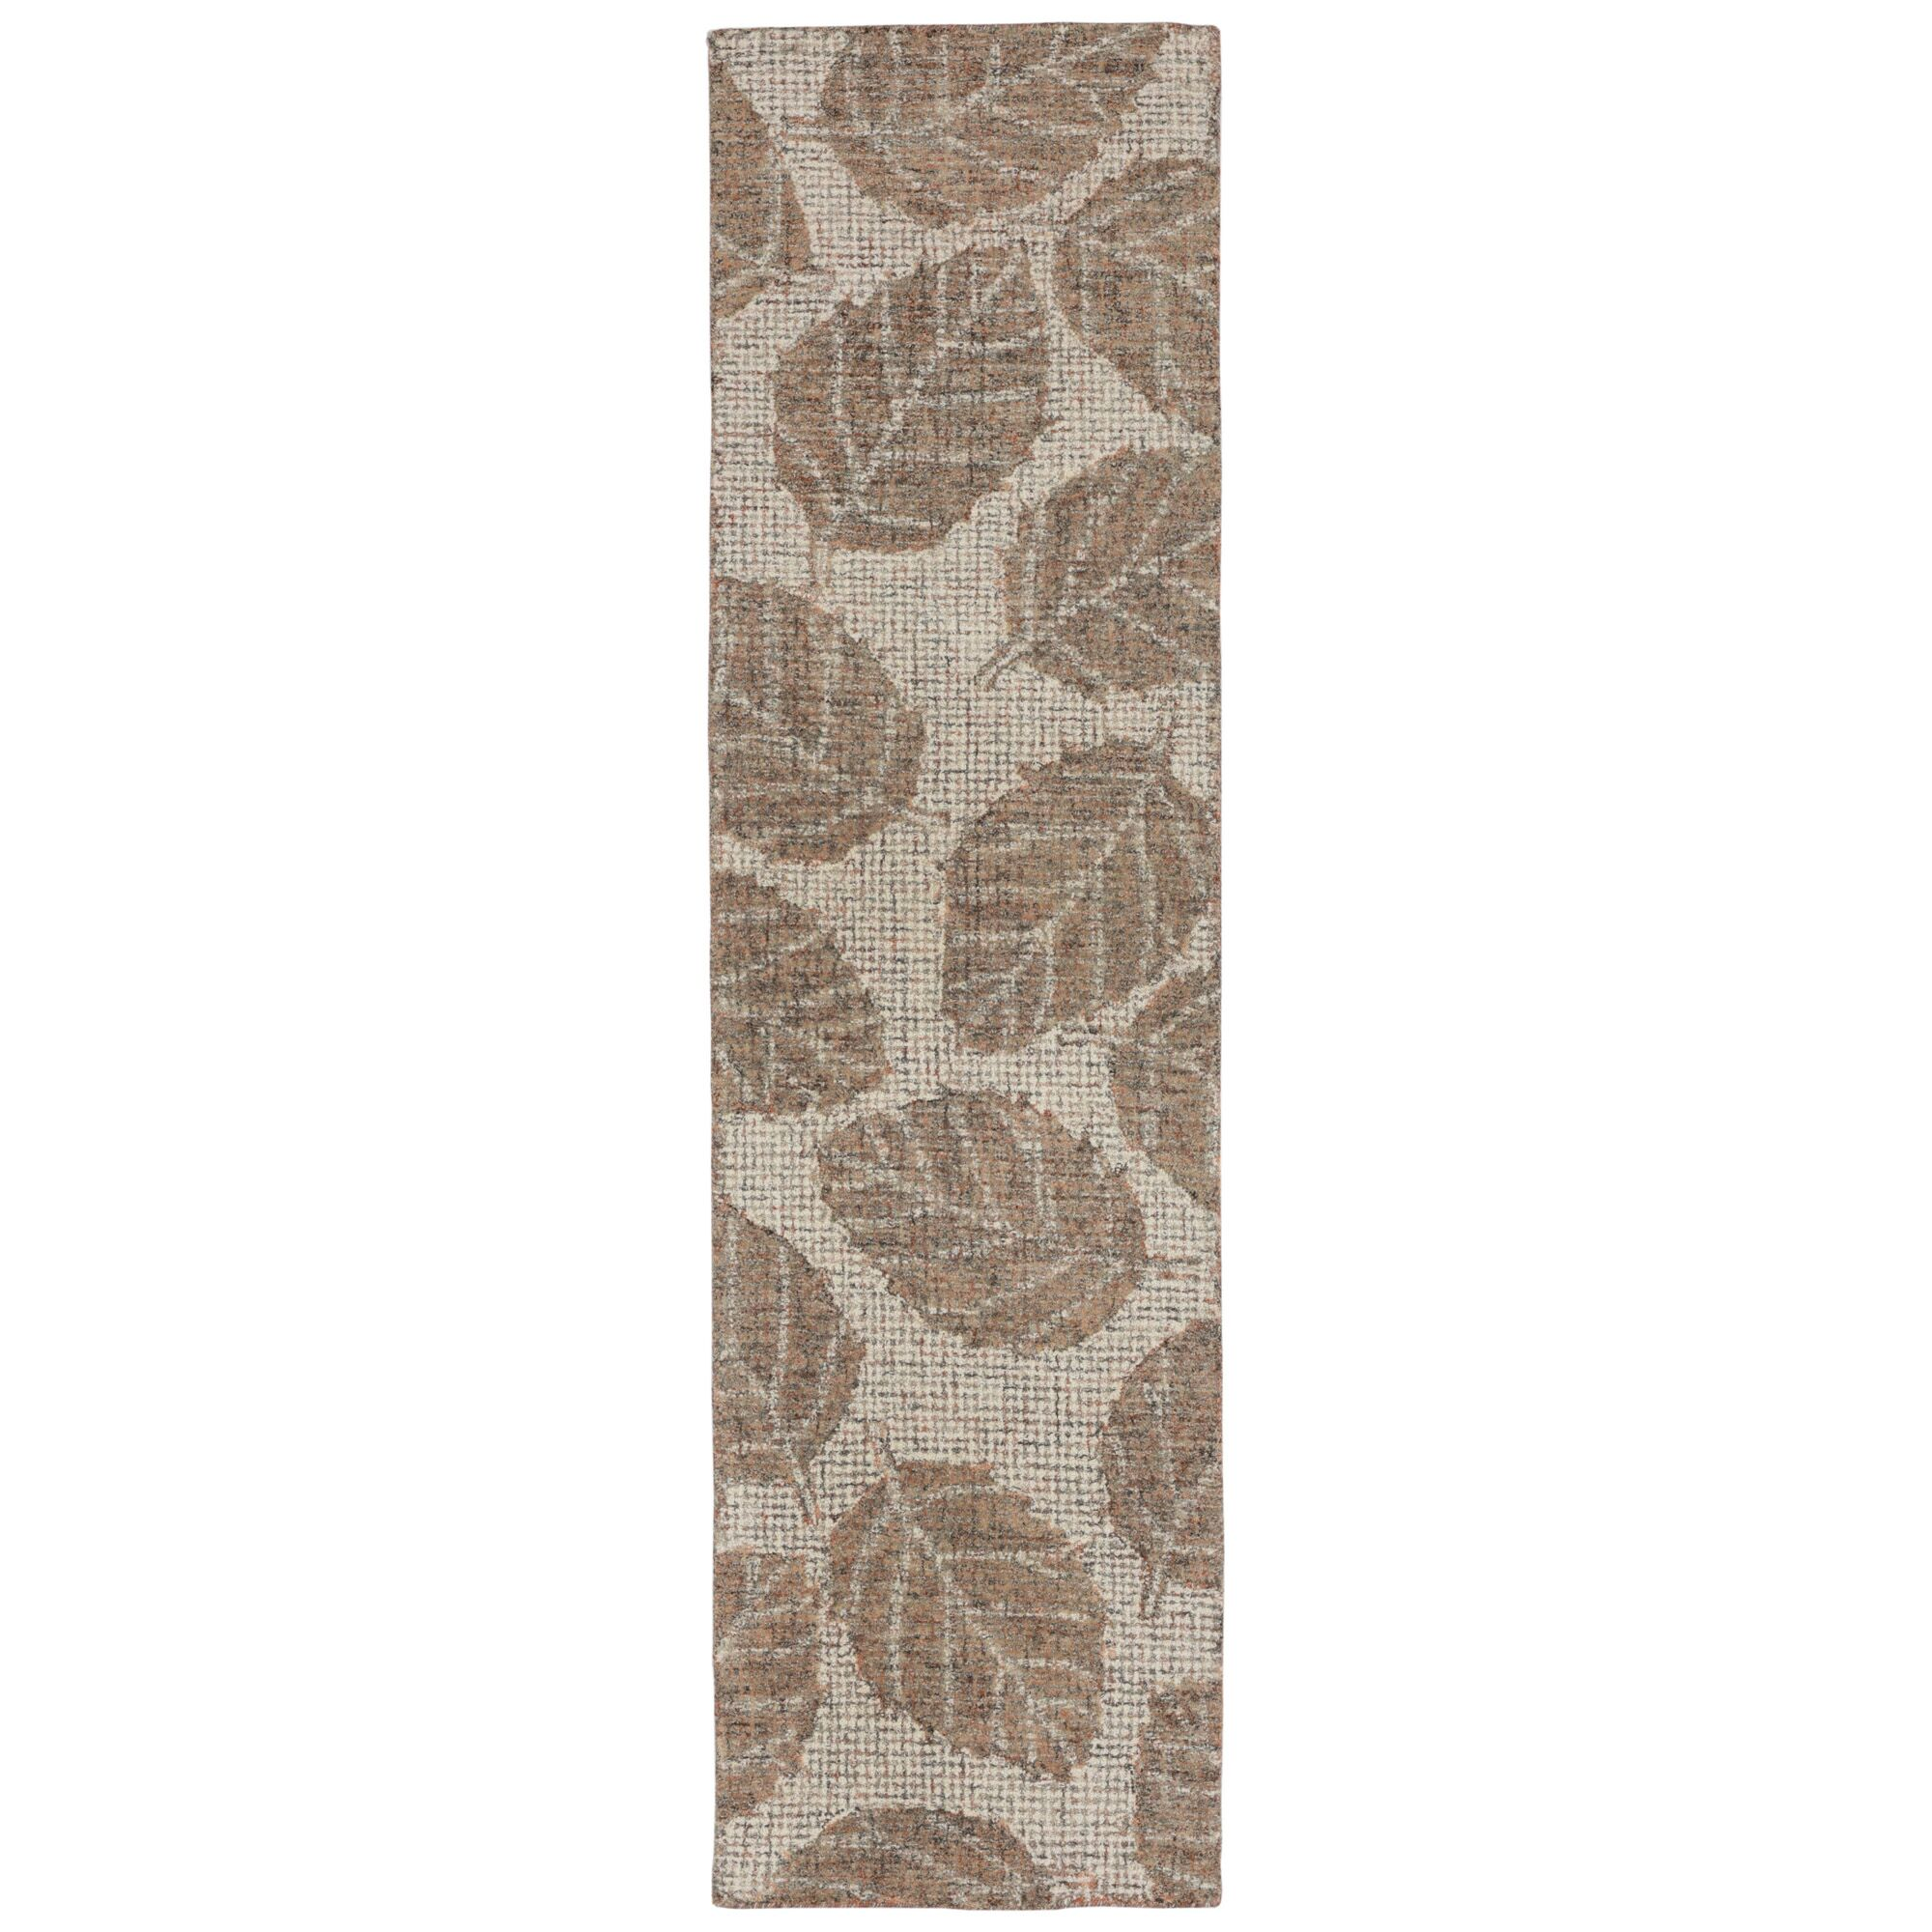 Claremont Leaf Hand-Tufted Wool Khaki/Brown Area Rug Rug Size: Runner 2' x 7'6